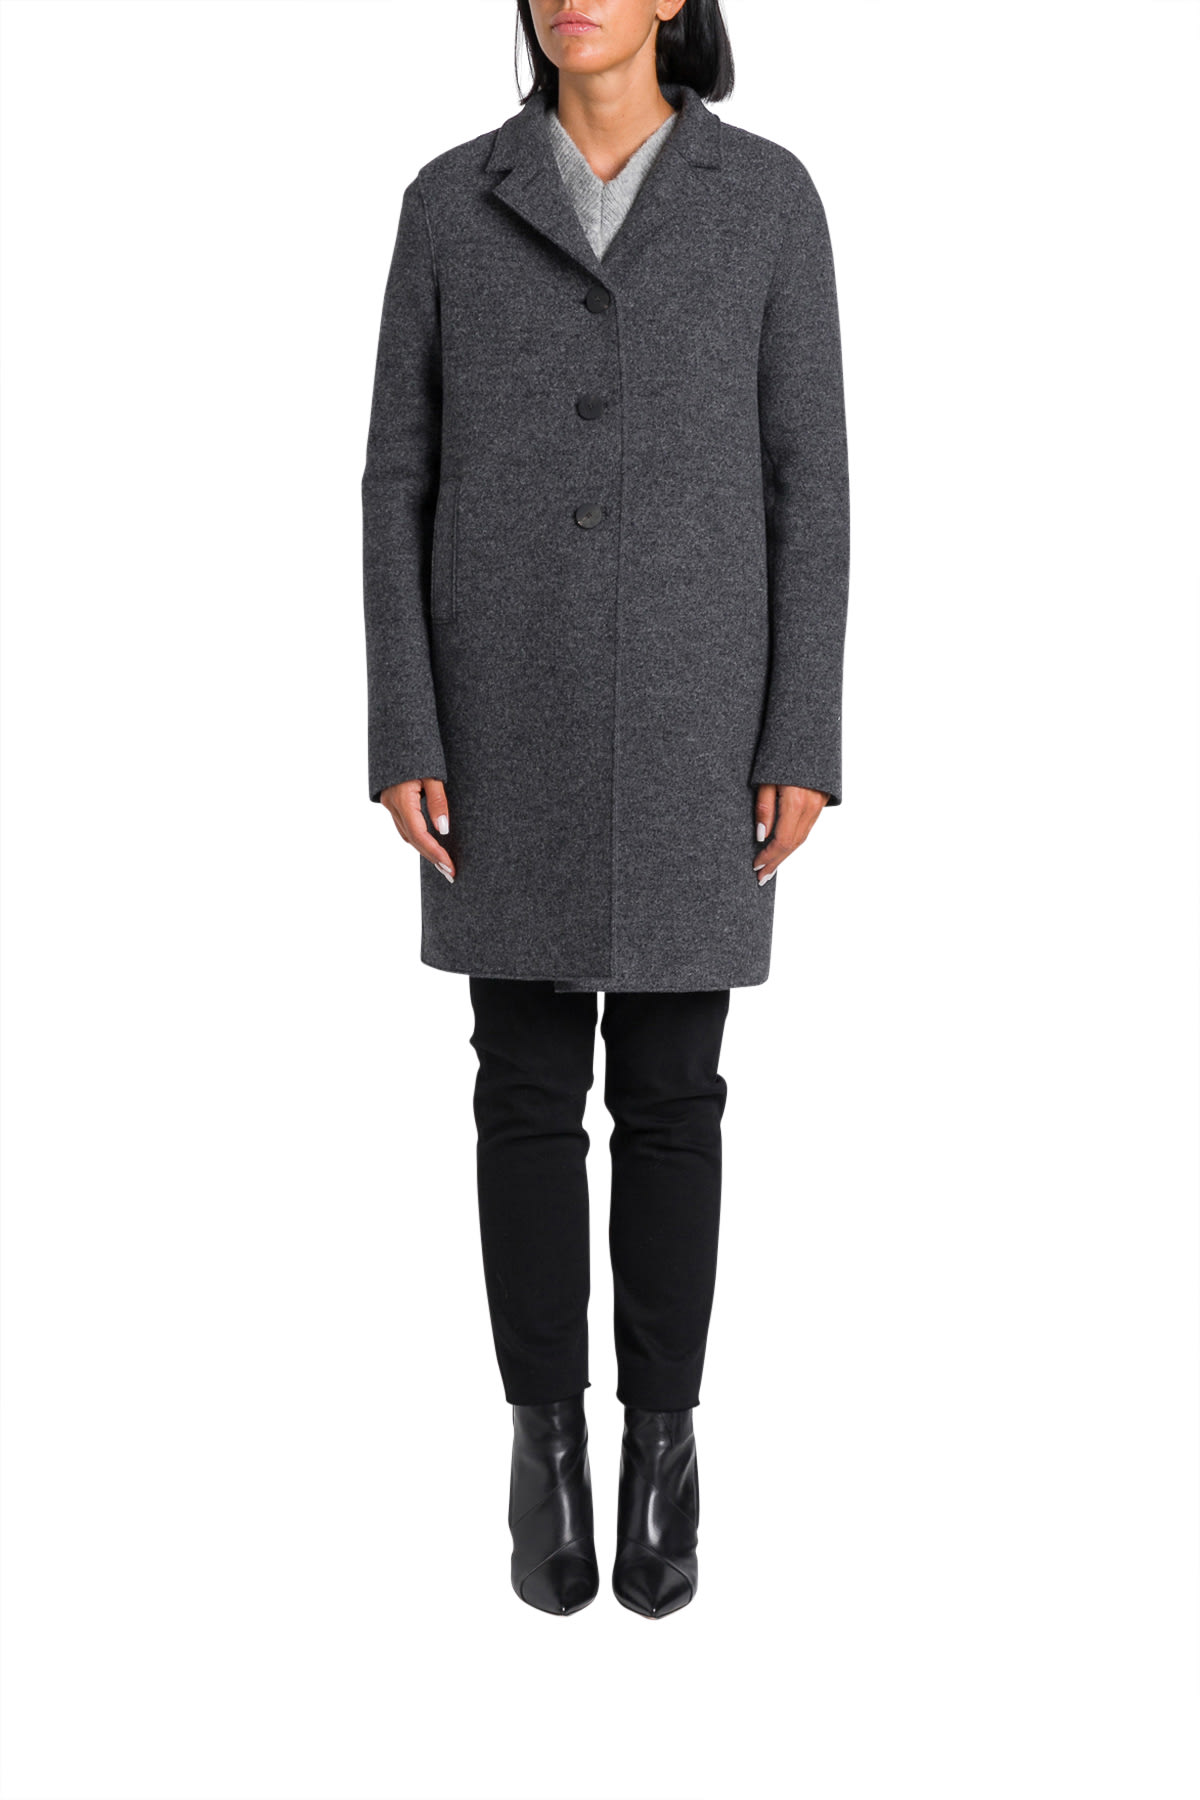 Photo of  Harris Wharf London Boxy Coat- shop Harris Wharf London jackets online sales